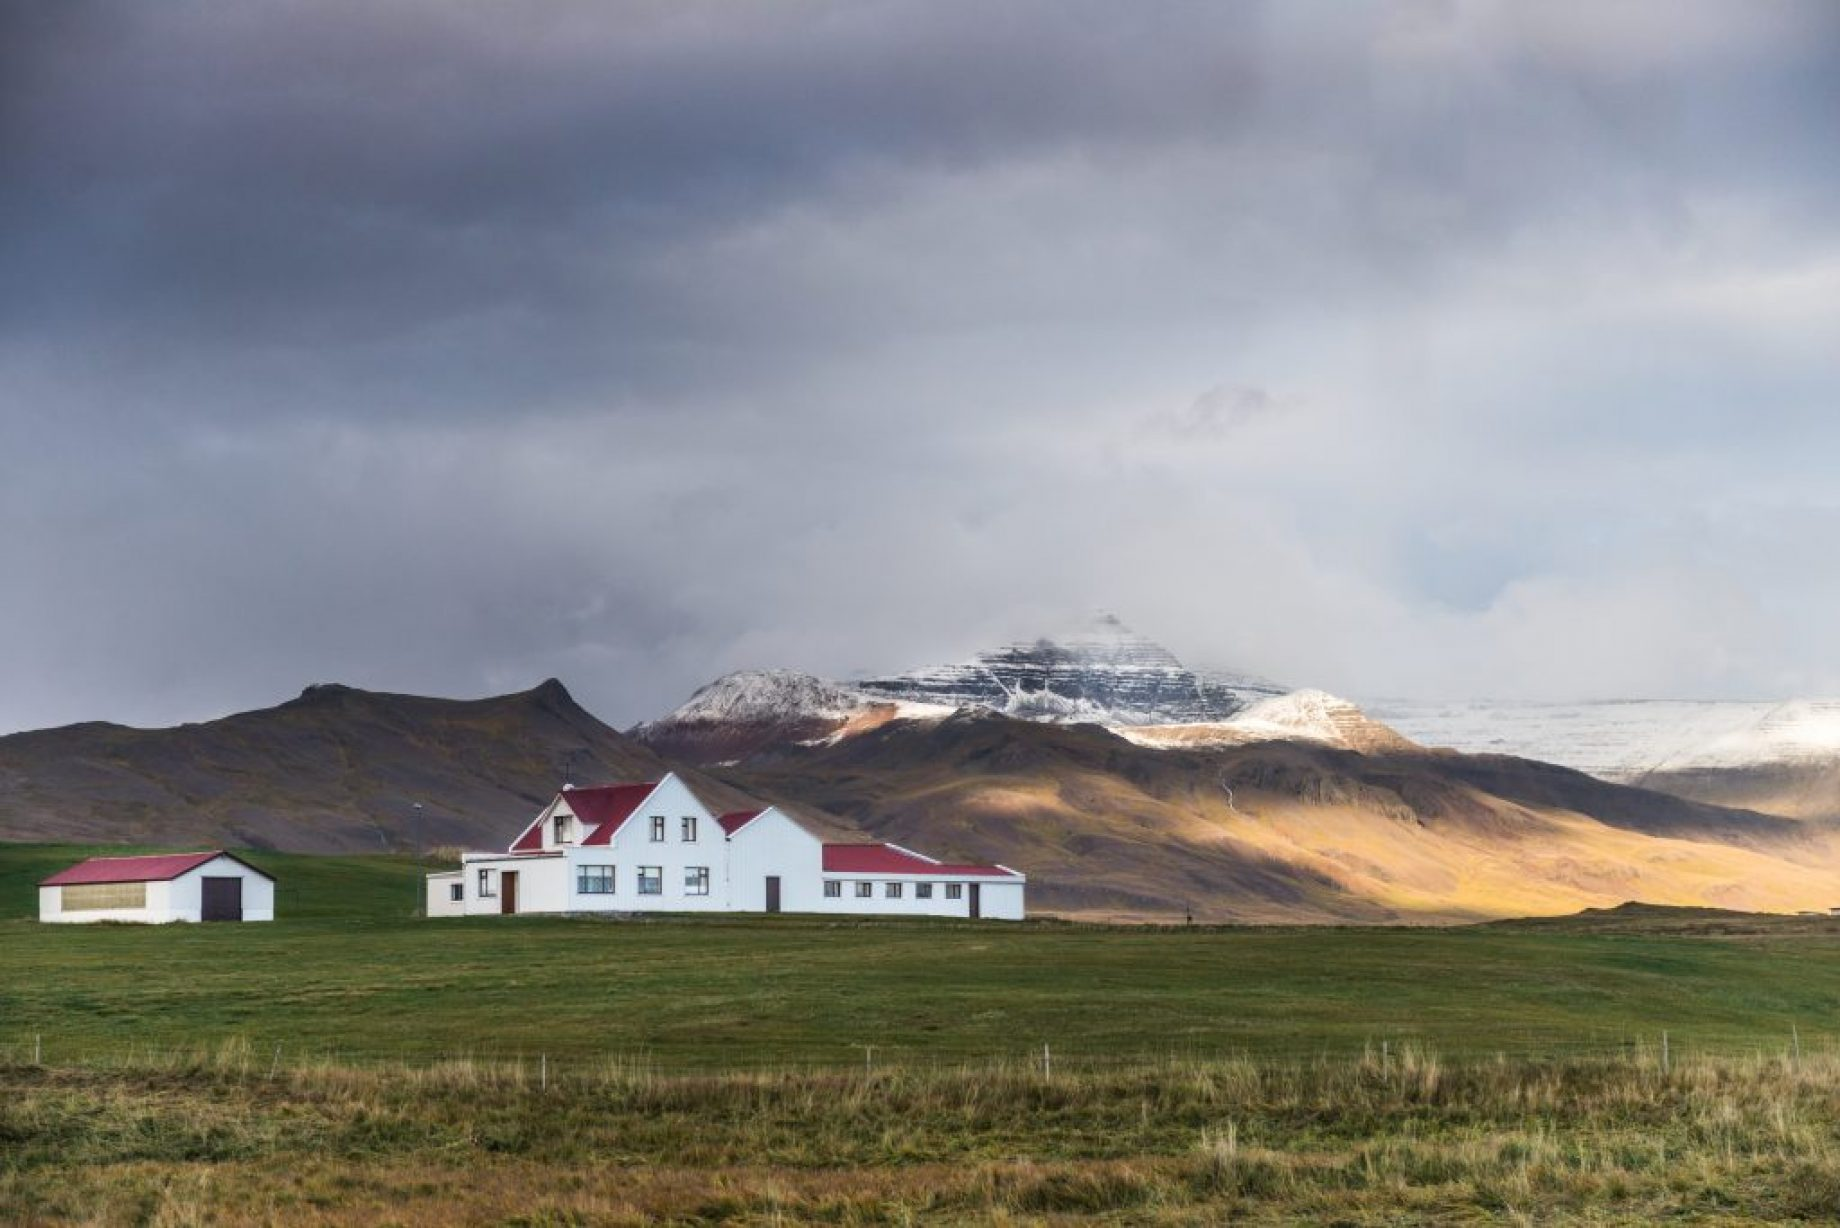 landscape Nature photography - studio MAHA - Iceland